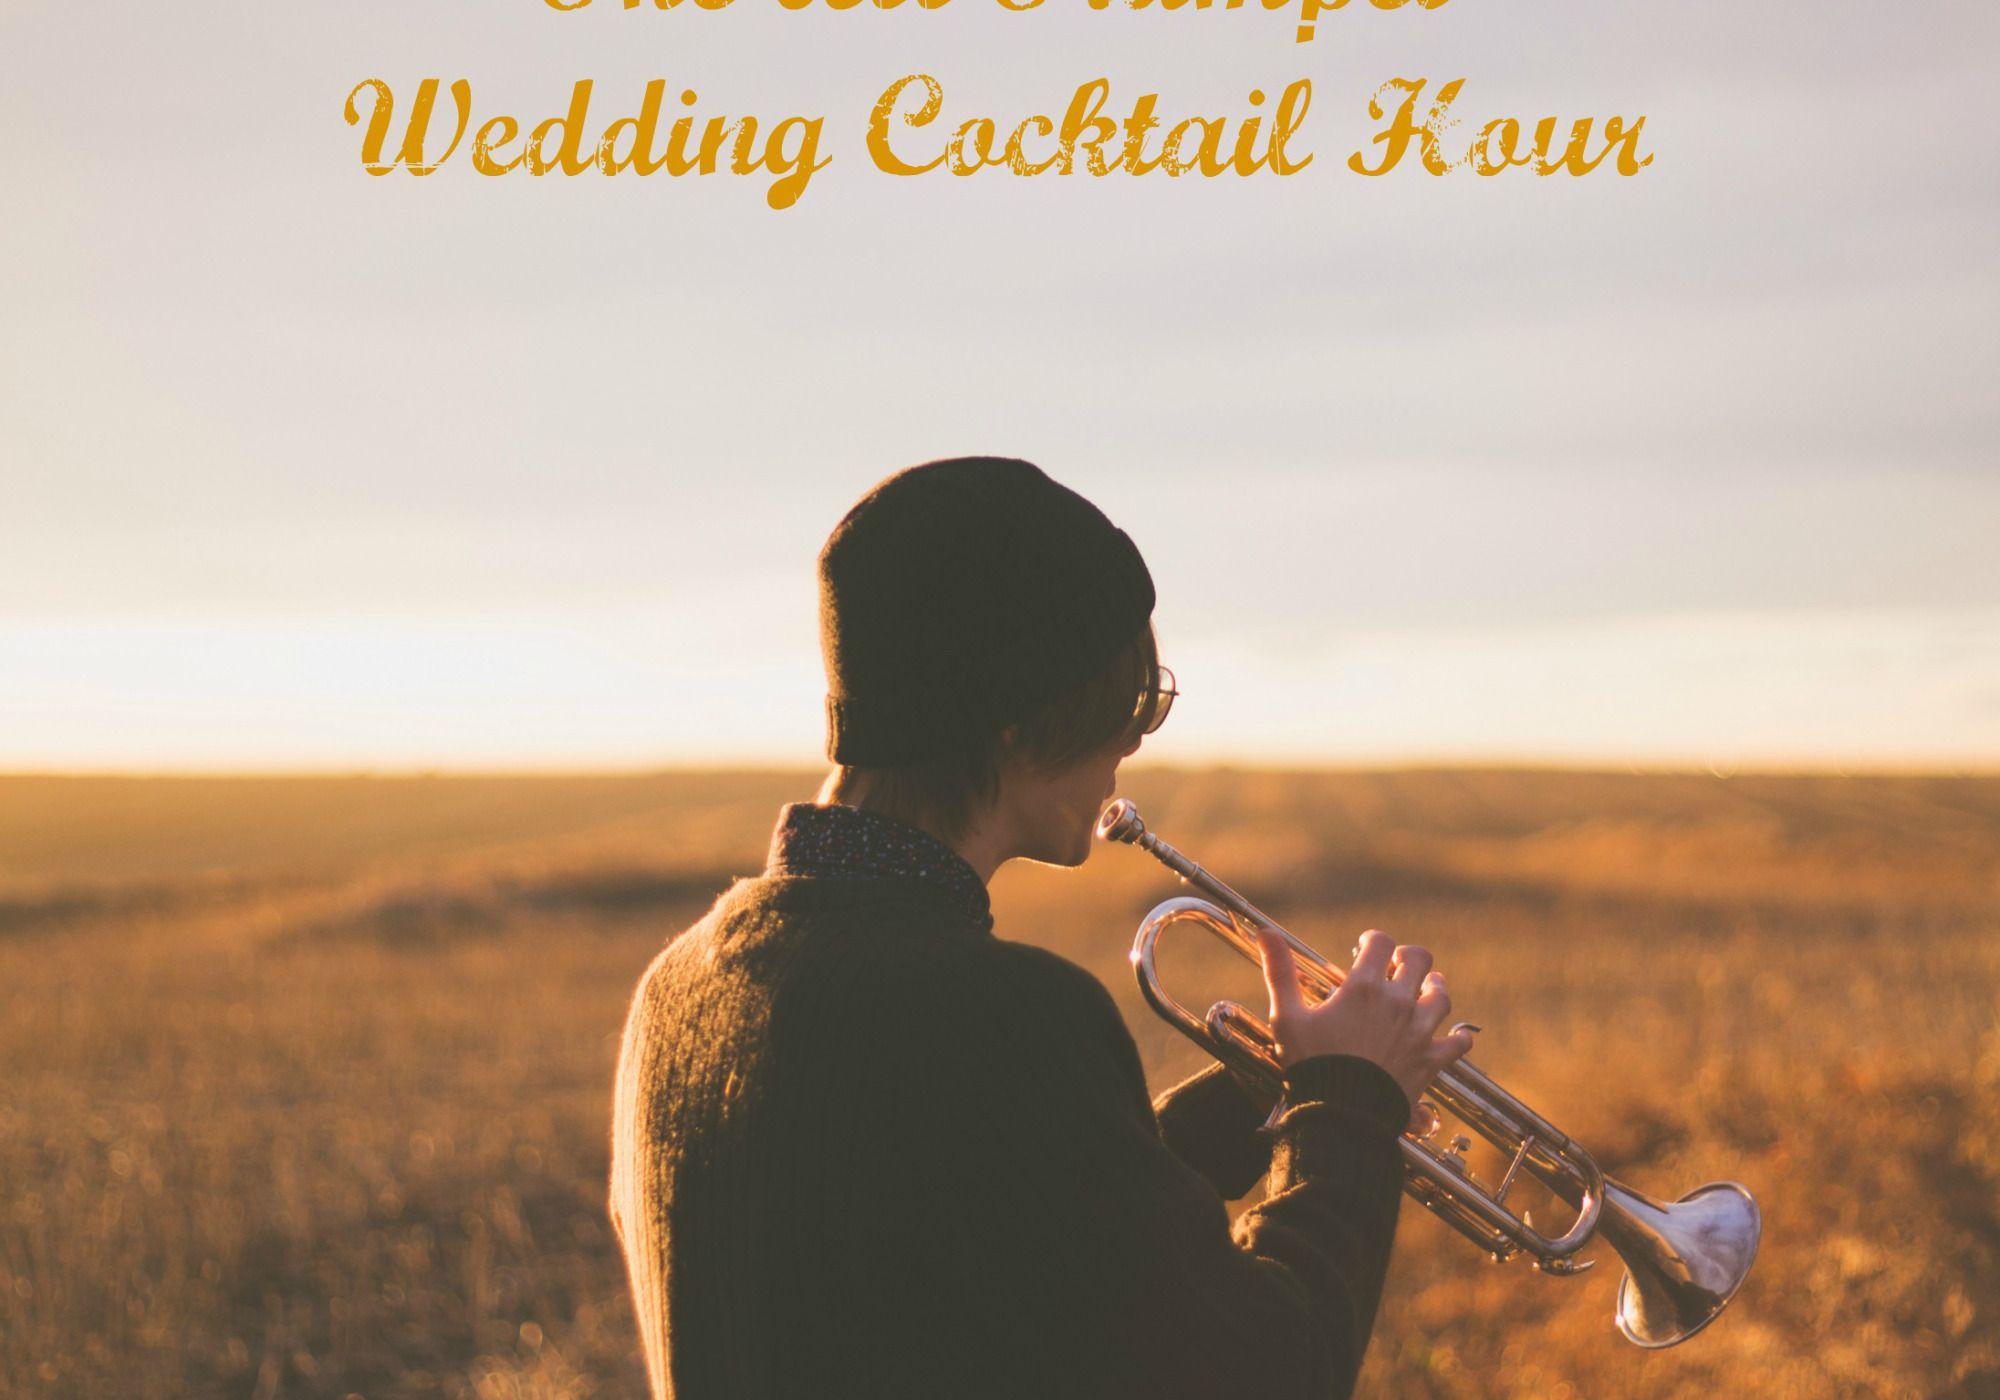 The All Trumpet Wedding Cocktail Hour Cocktails, Tv